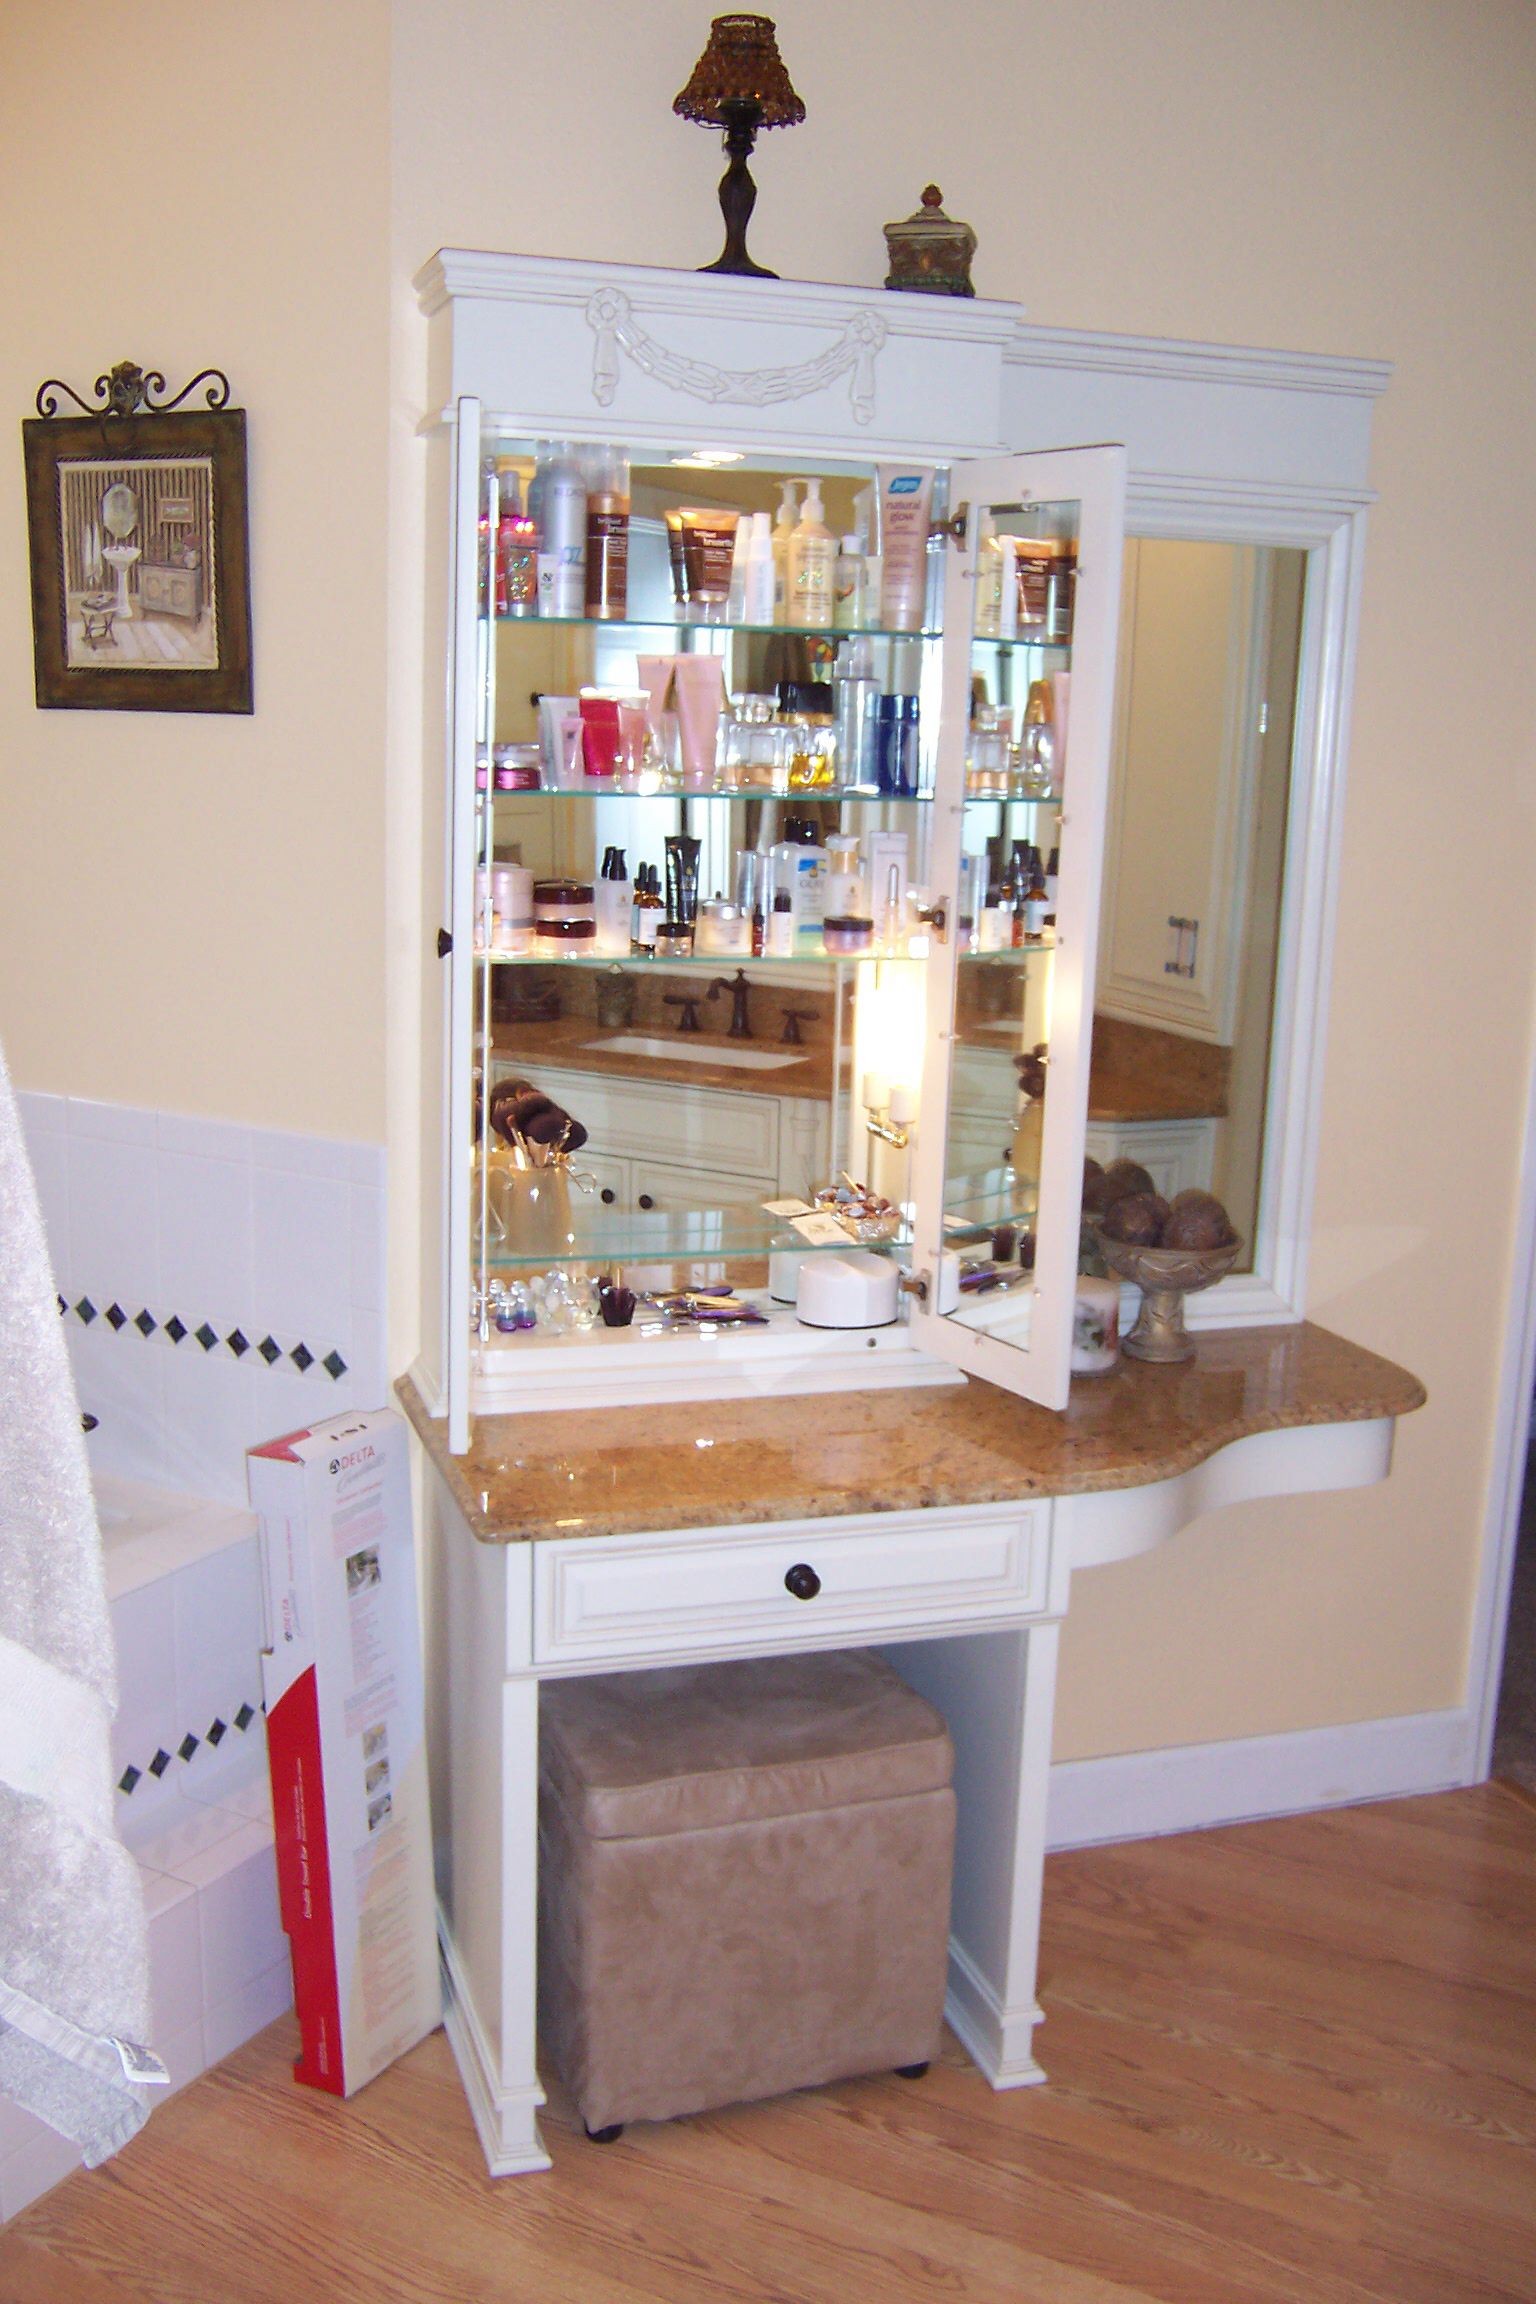 Mirror And Lighted Makeup Cabinet By Modern Cabinet Design Llc Moderncabinetdesign Yahoo Com Cabinet Design Modern Cabinets Cabinet